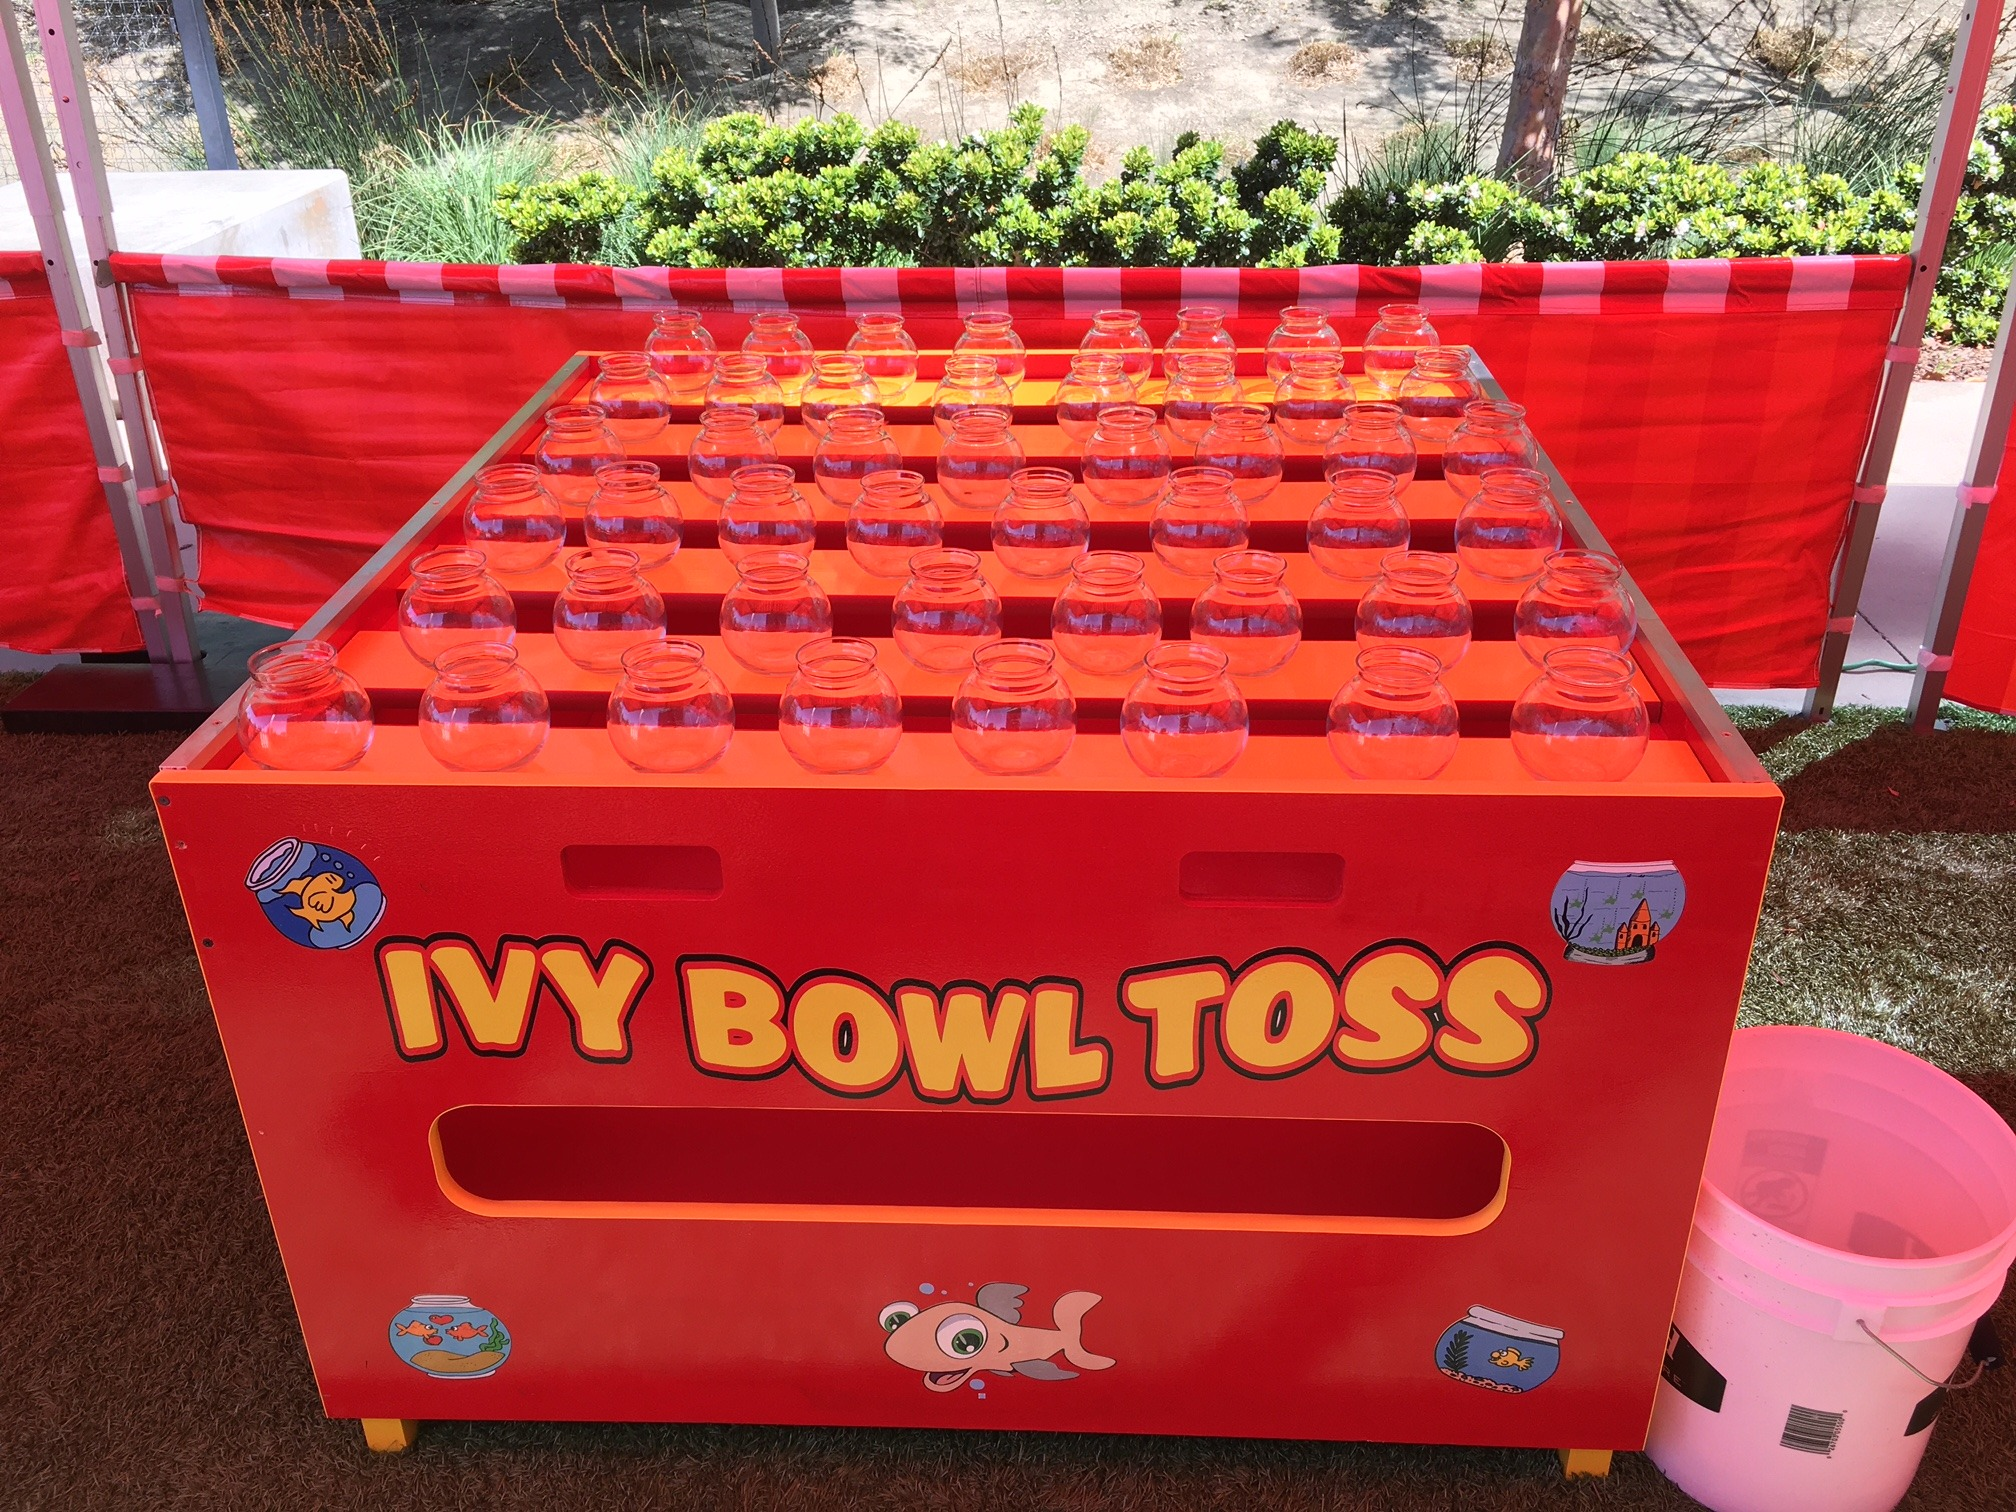 Giant Ping Pong Toss Carnival Game Lets Party